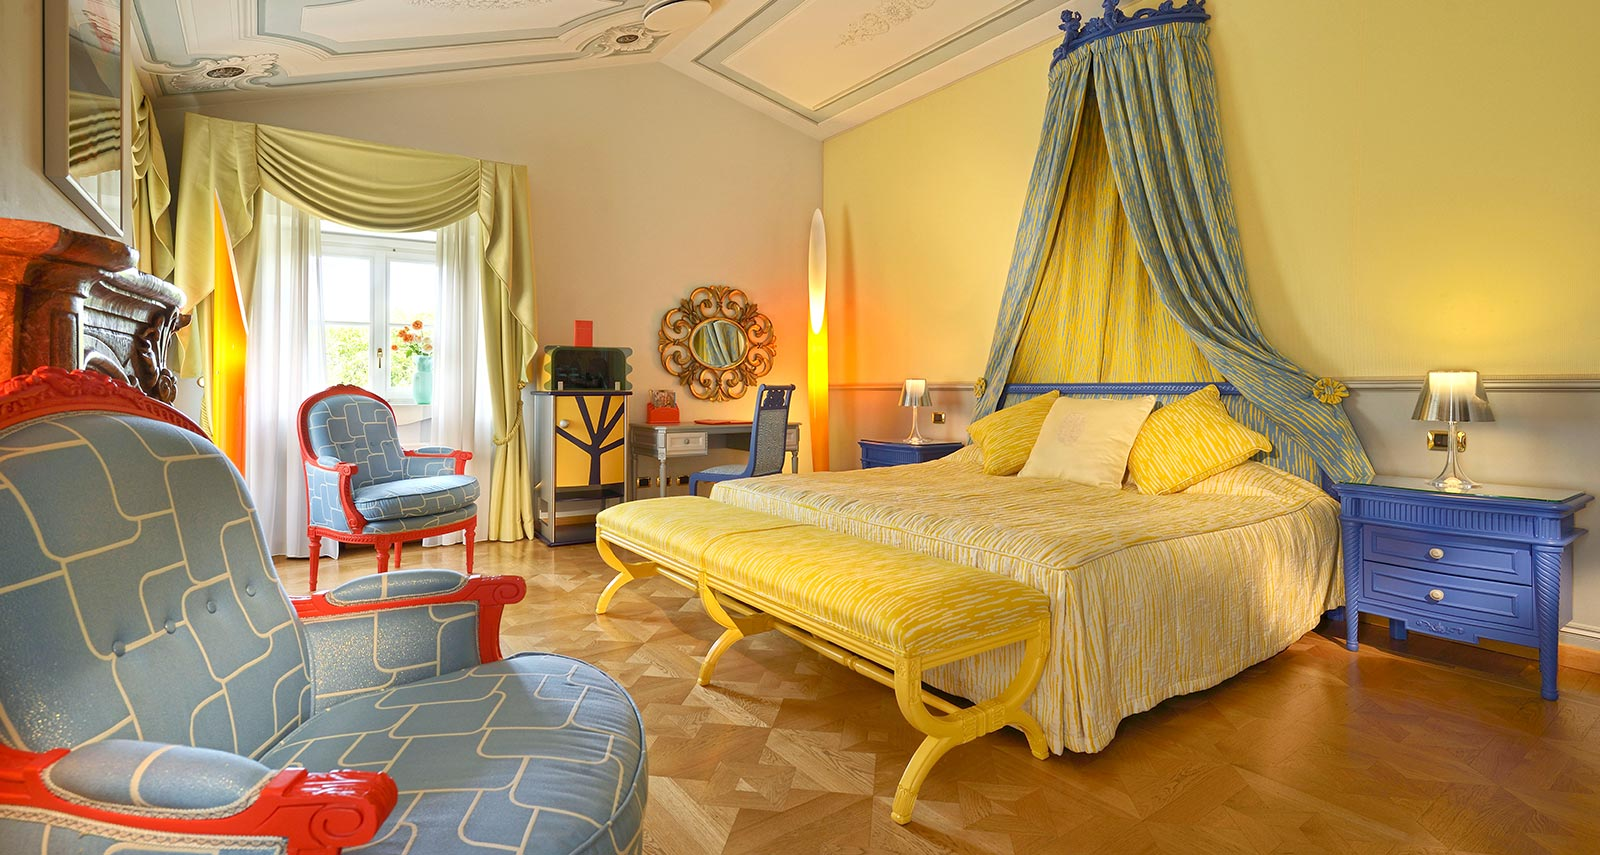 Luxury accommodation Byblos Hotel Verona